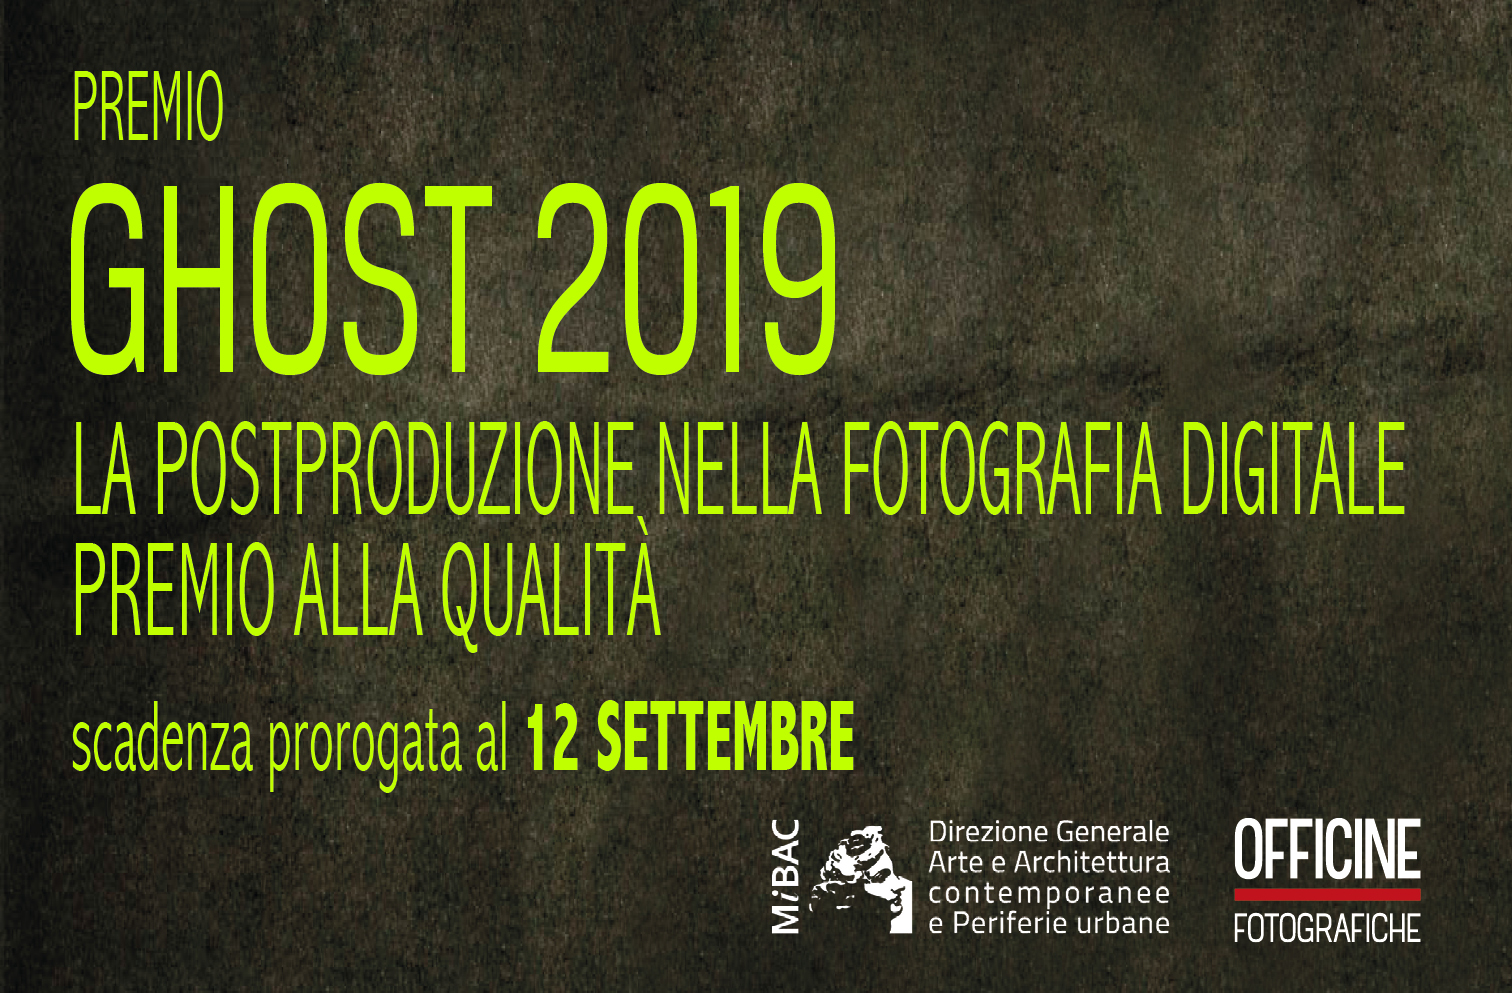 Premio_Ghost_2019 web-LIME